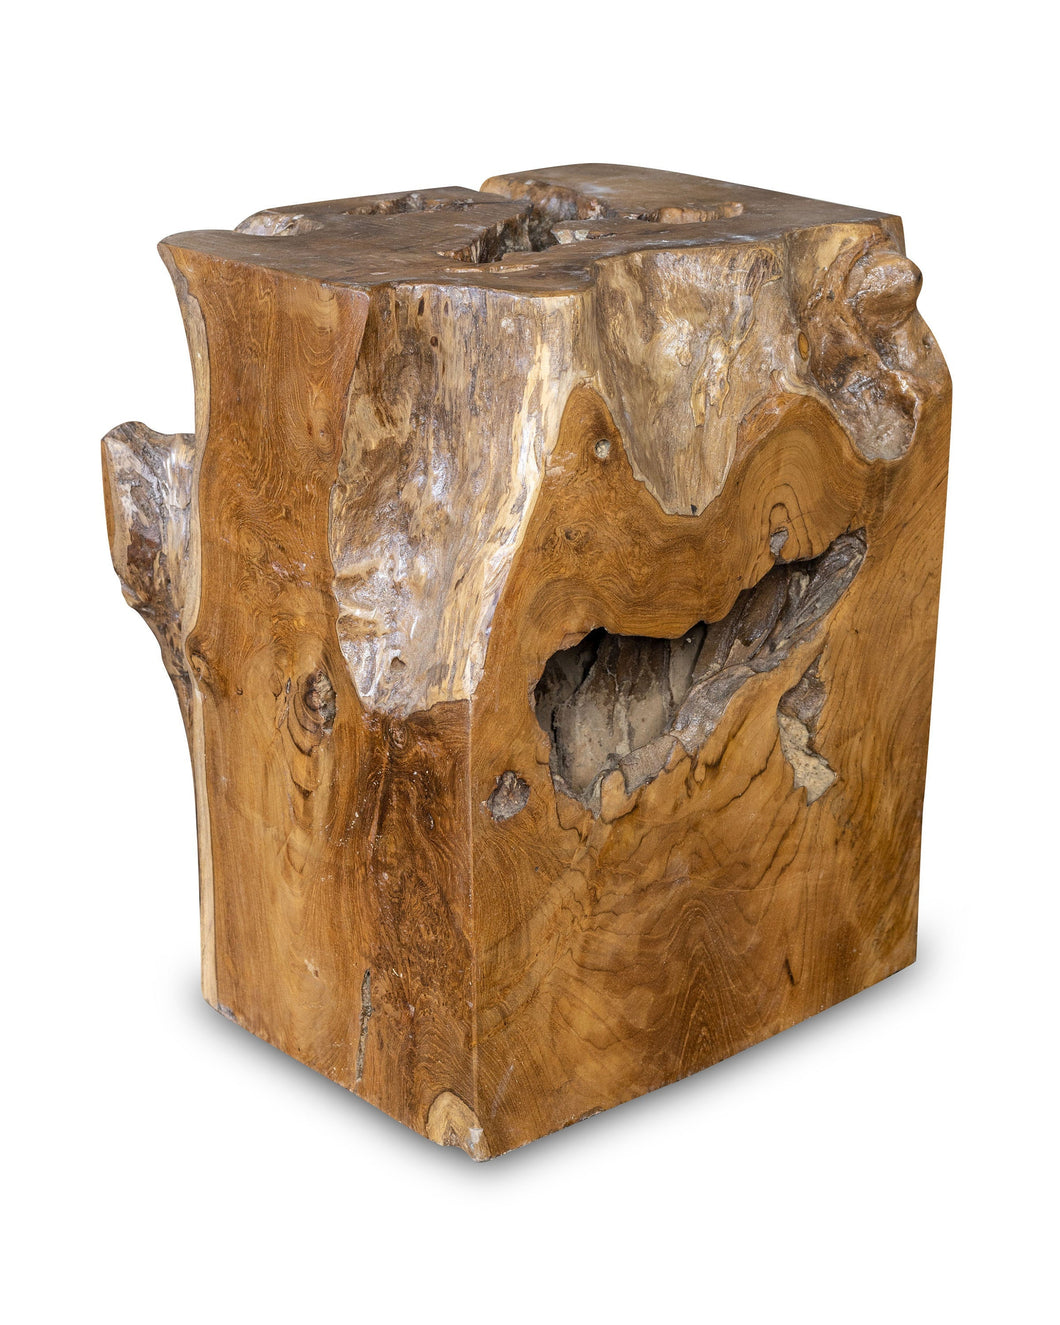 Square Solid Teak Wood Side Table, Natural Tree Stump Stool or End Table #11   17.5